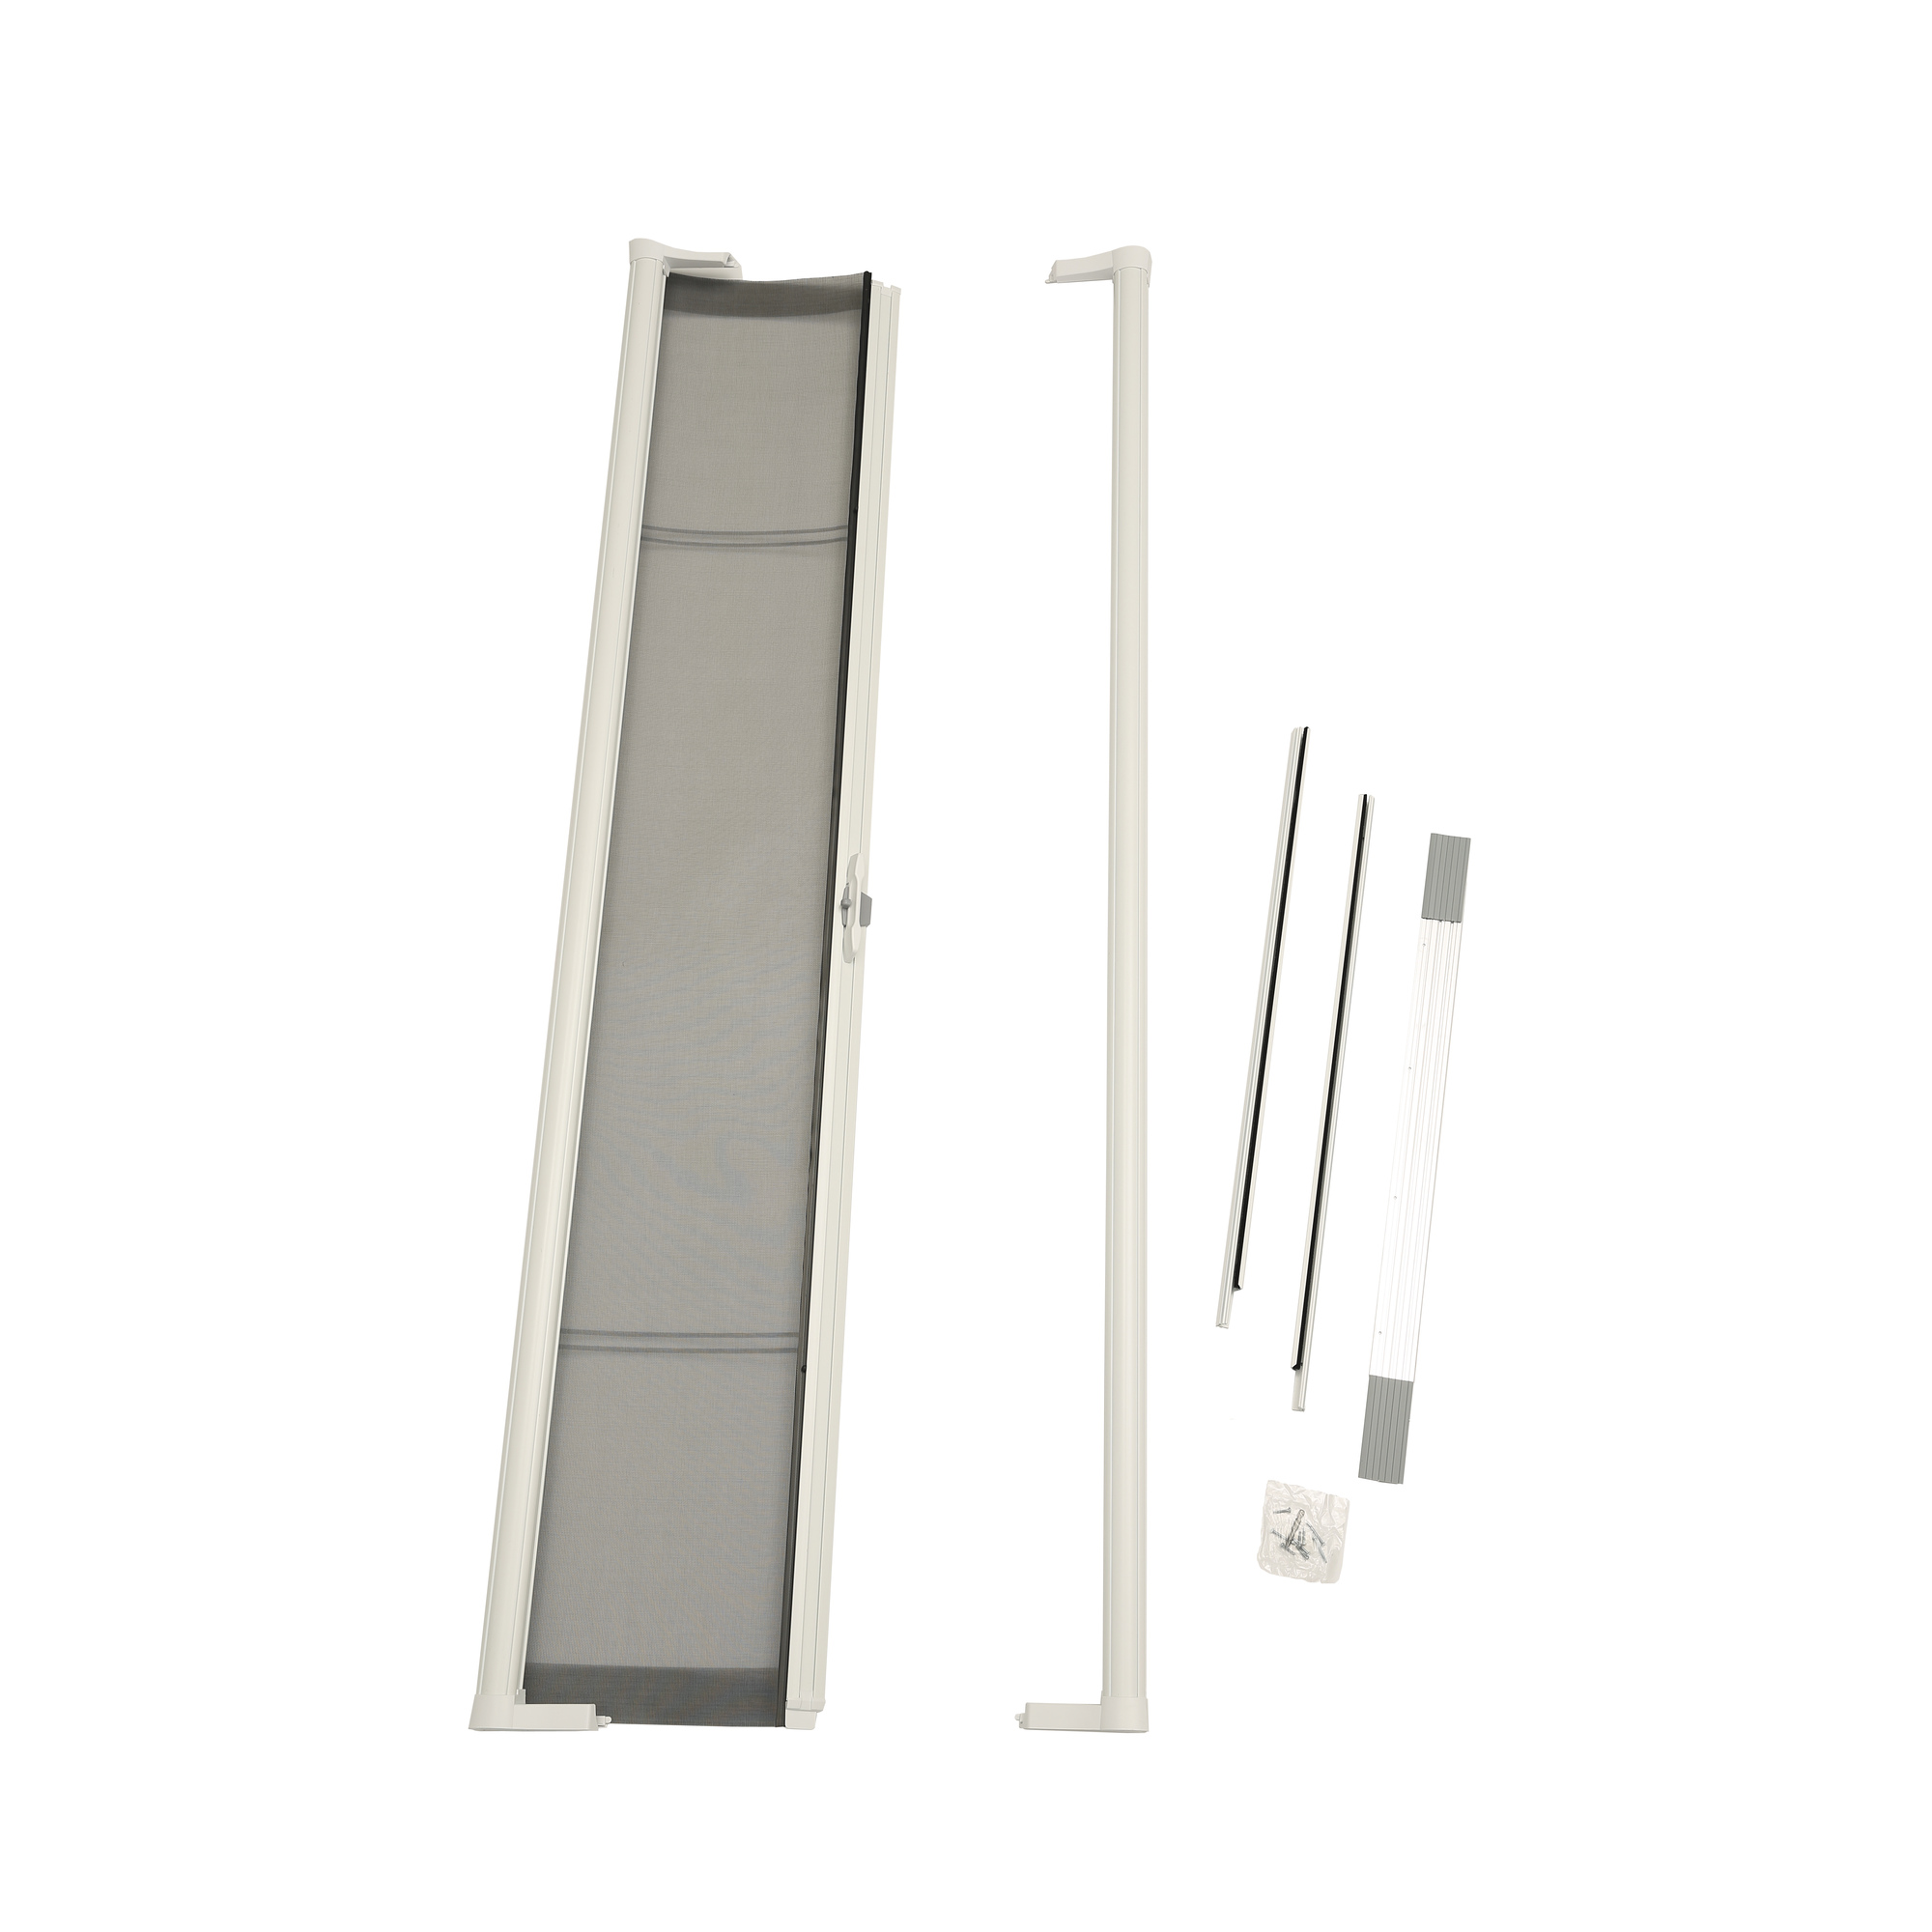 "ODL Brisa White Standard Retractable Screen for 80"" Inswing/Outswing Doors"